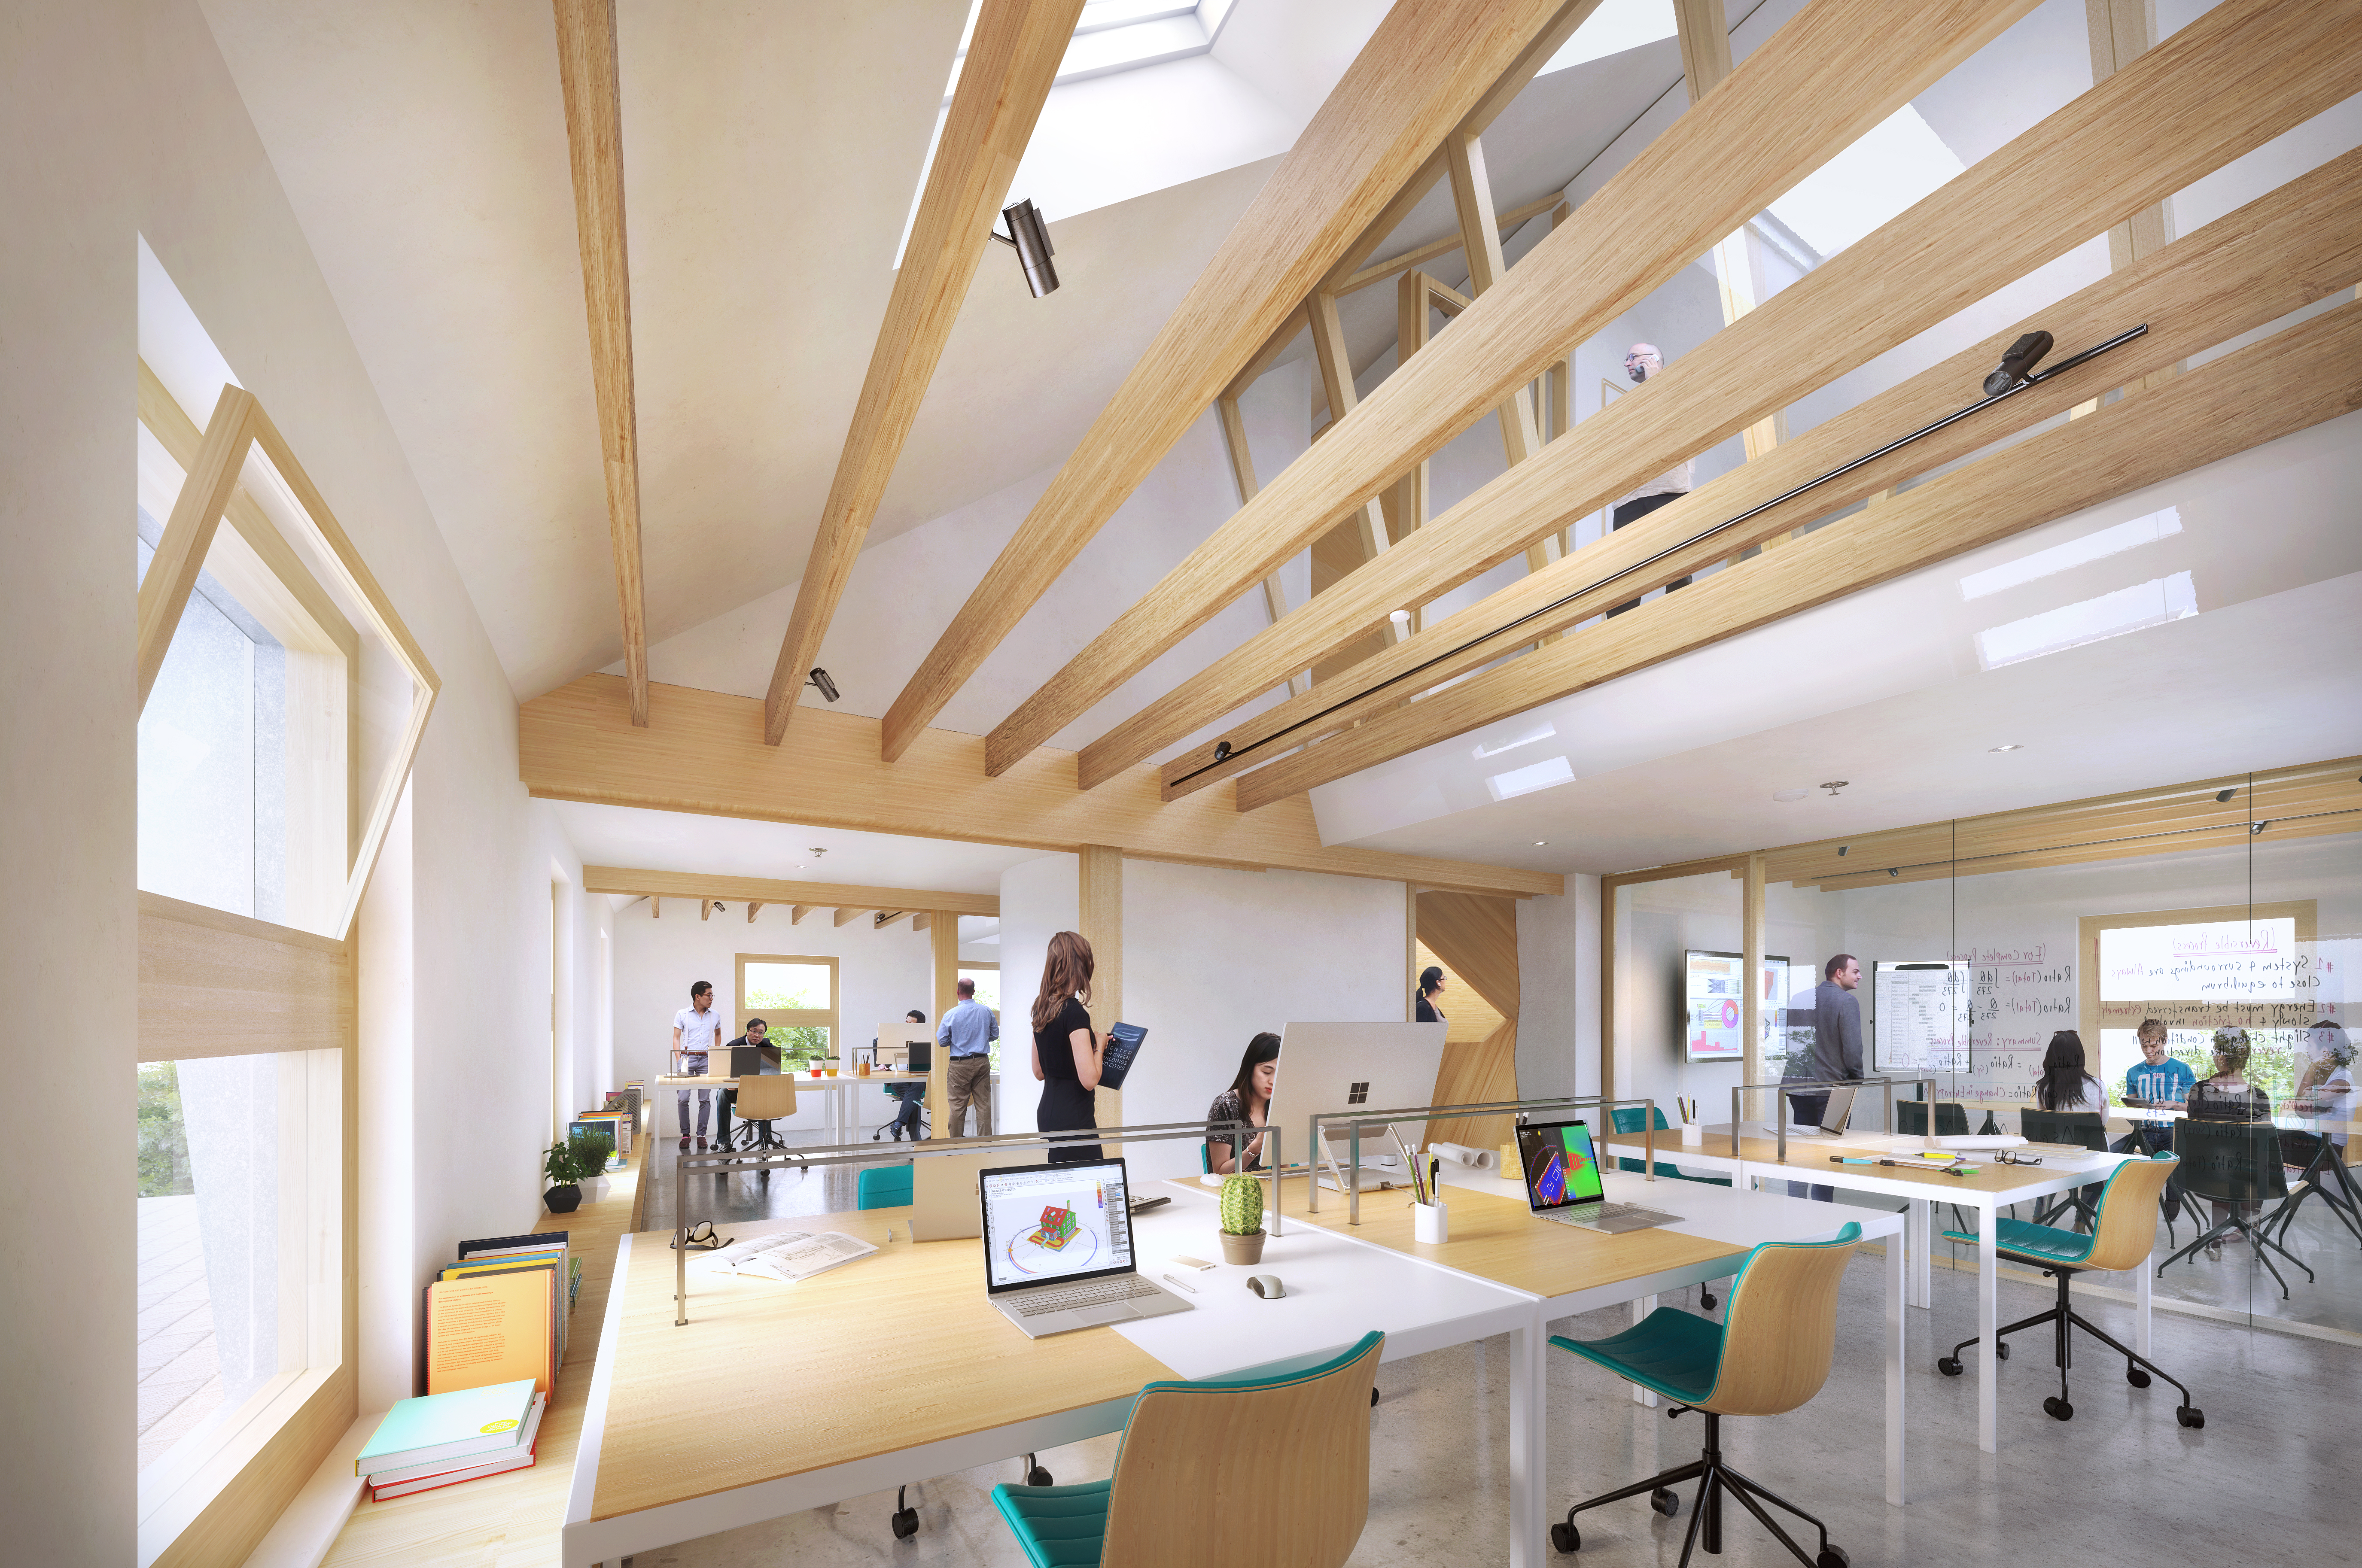 Harvard s building a model for energy efficiency by renovating a